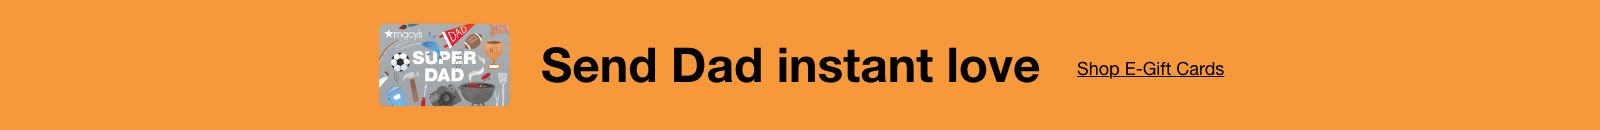 Send Dad instant love, Shop E-Gift Cards